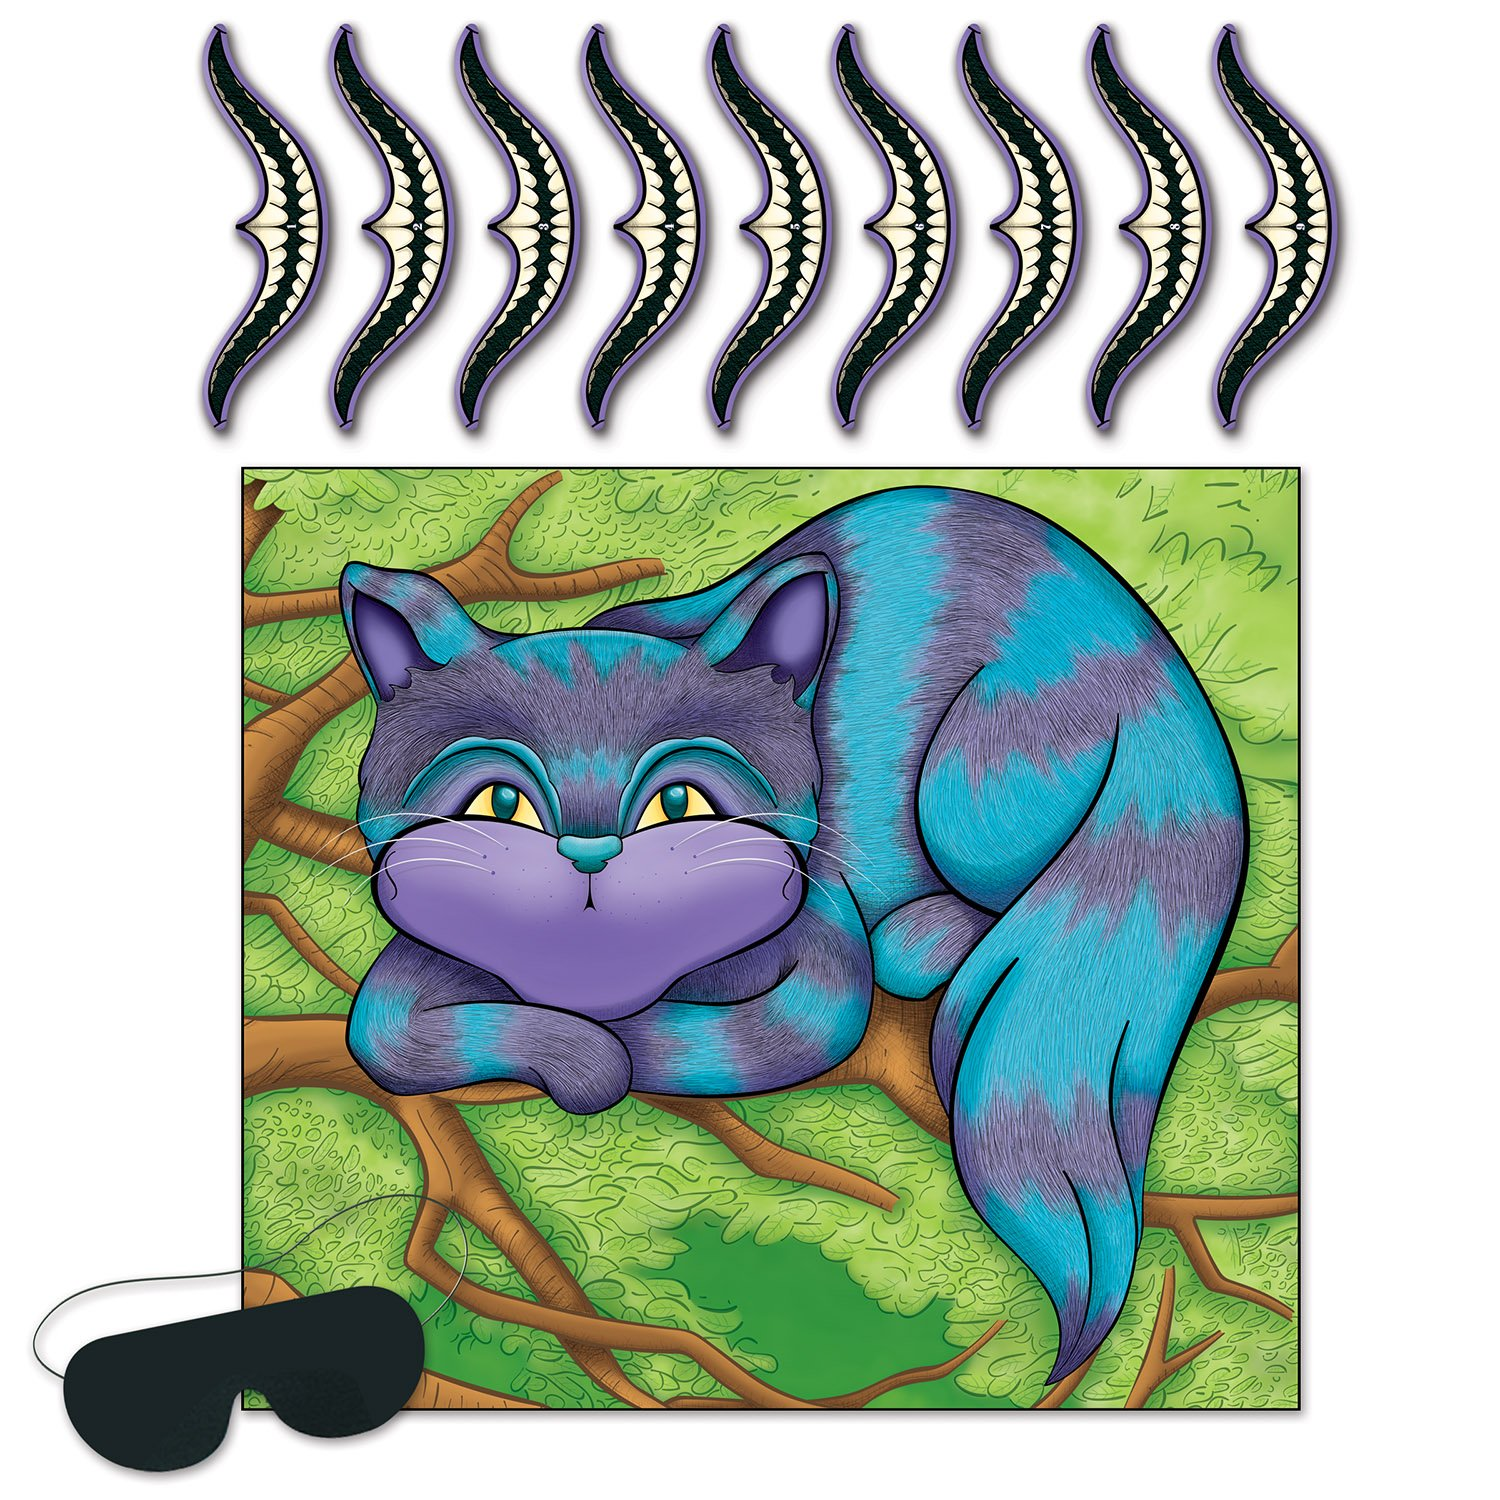 Cheshire Cat Game Pin the Smile on the Cat